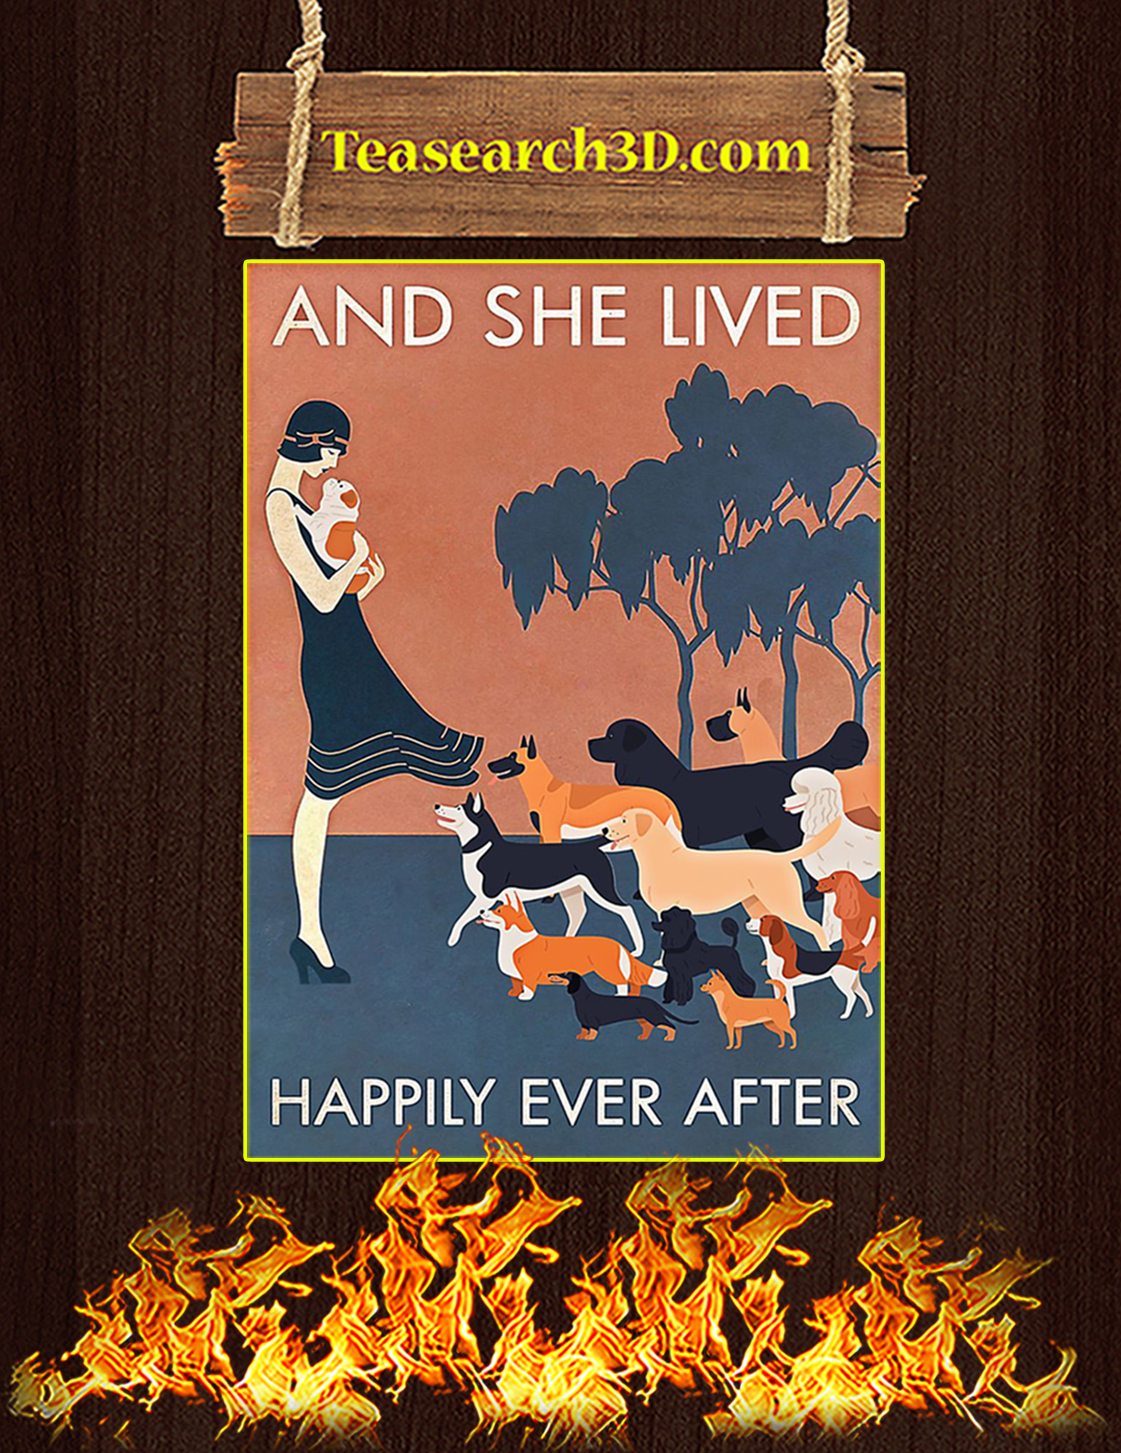 Dogs And she lived happily ever after poster A3